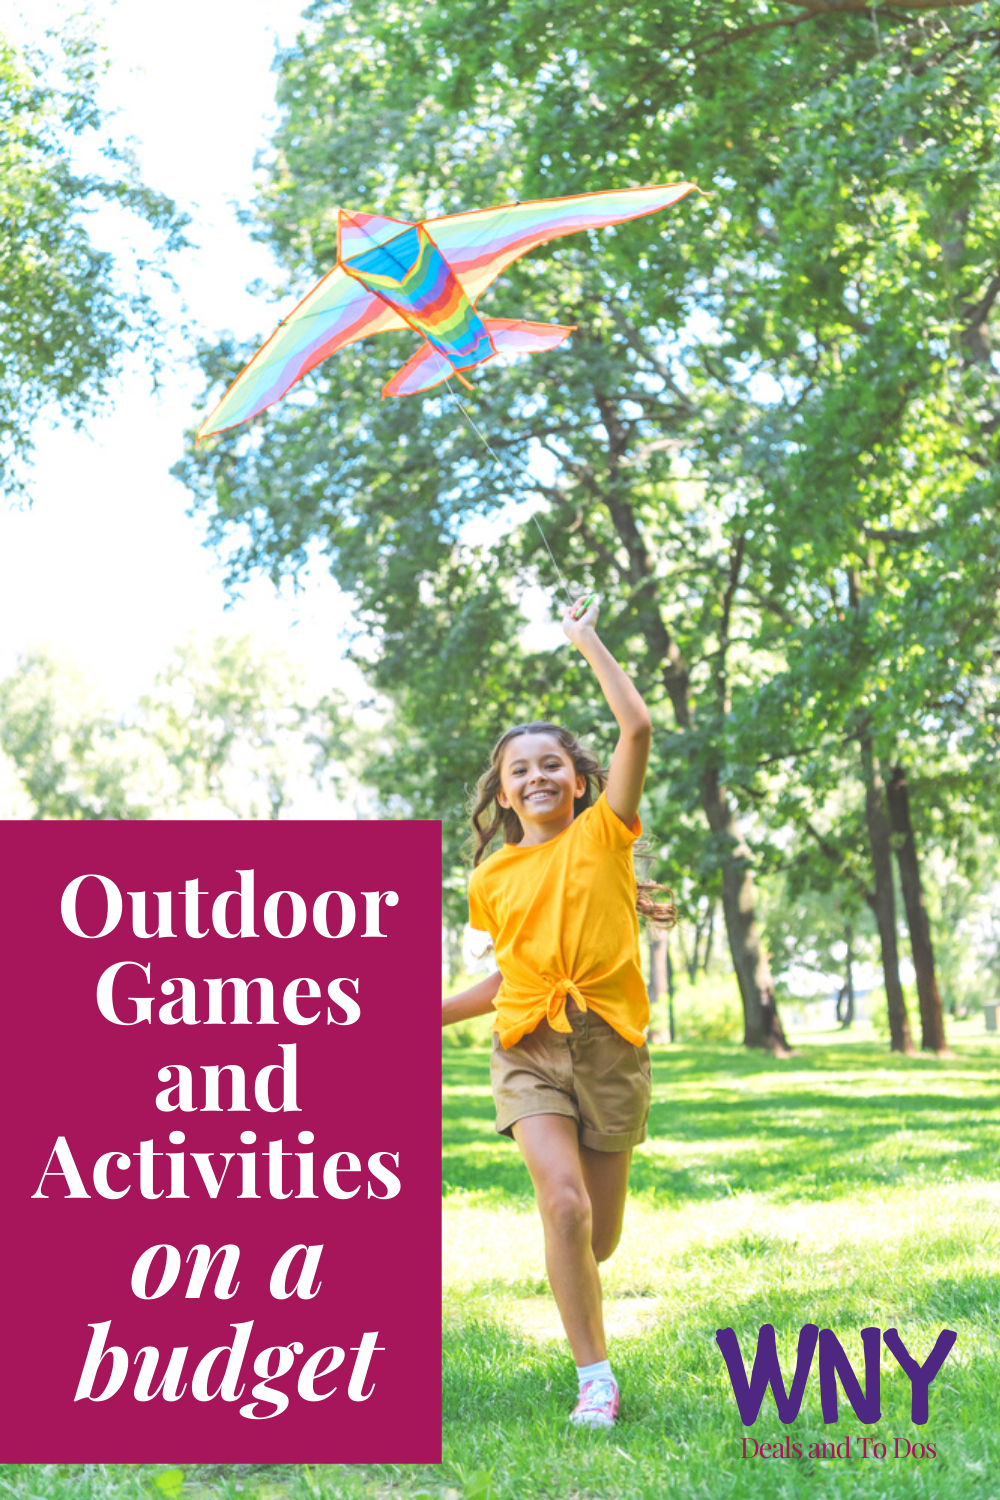 Road trips can be a great way to spend some summer days, but most of the time you will need to come up with ways to keep your kids entertained.  Here are a few outdoor games and activities to enjoy while on a budget.